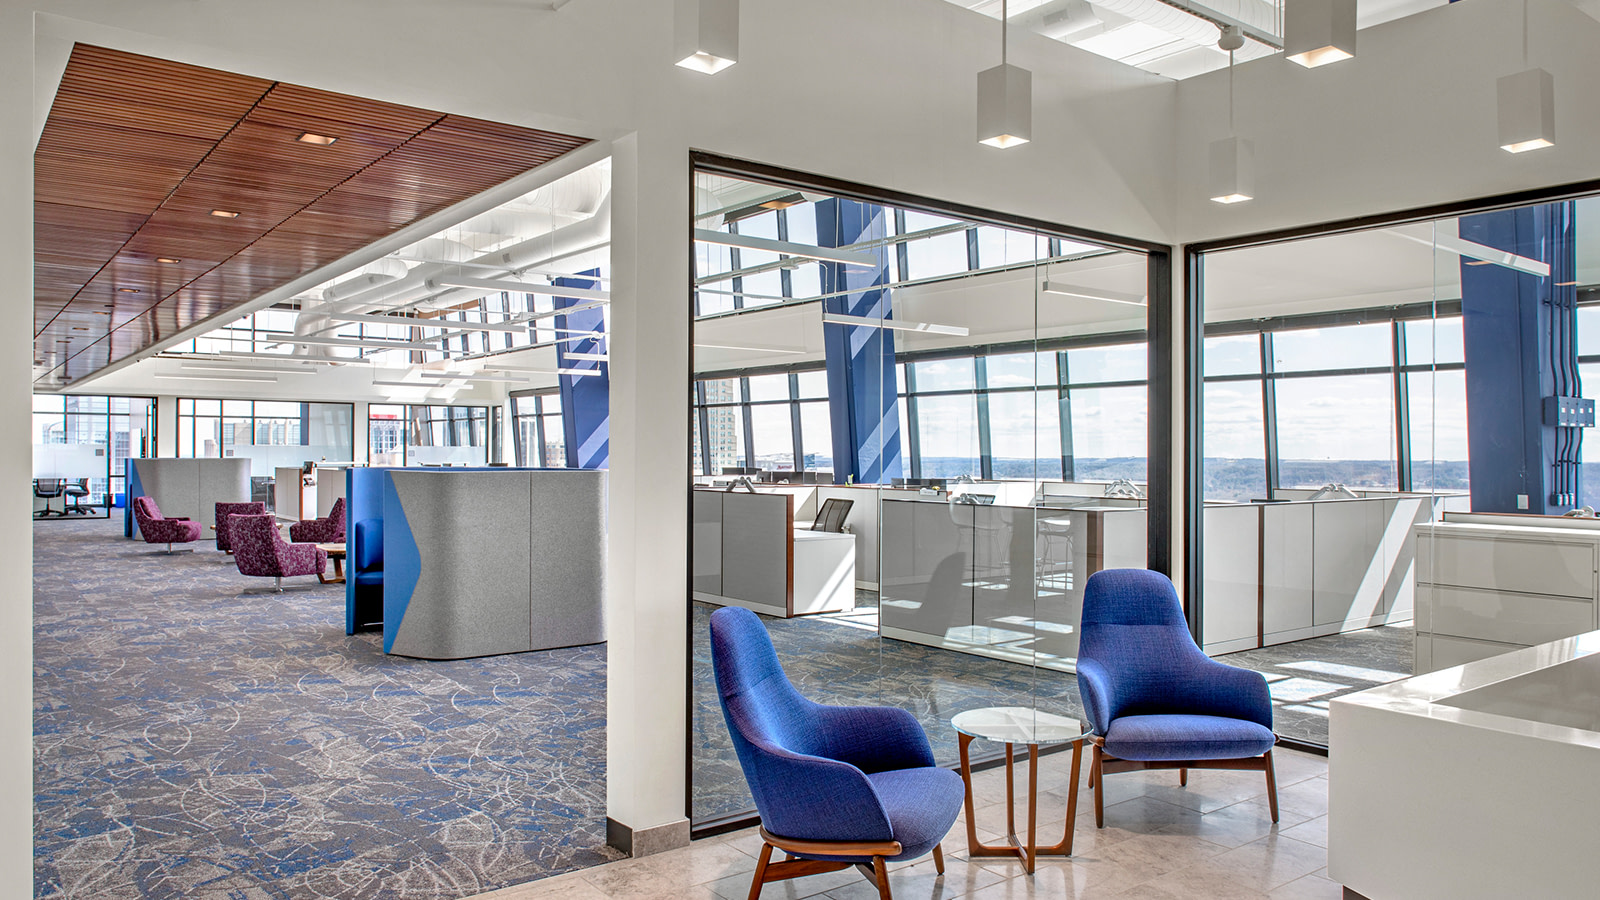 Meeting space at the Arch Insurance headquarters.